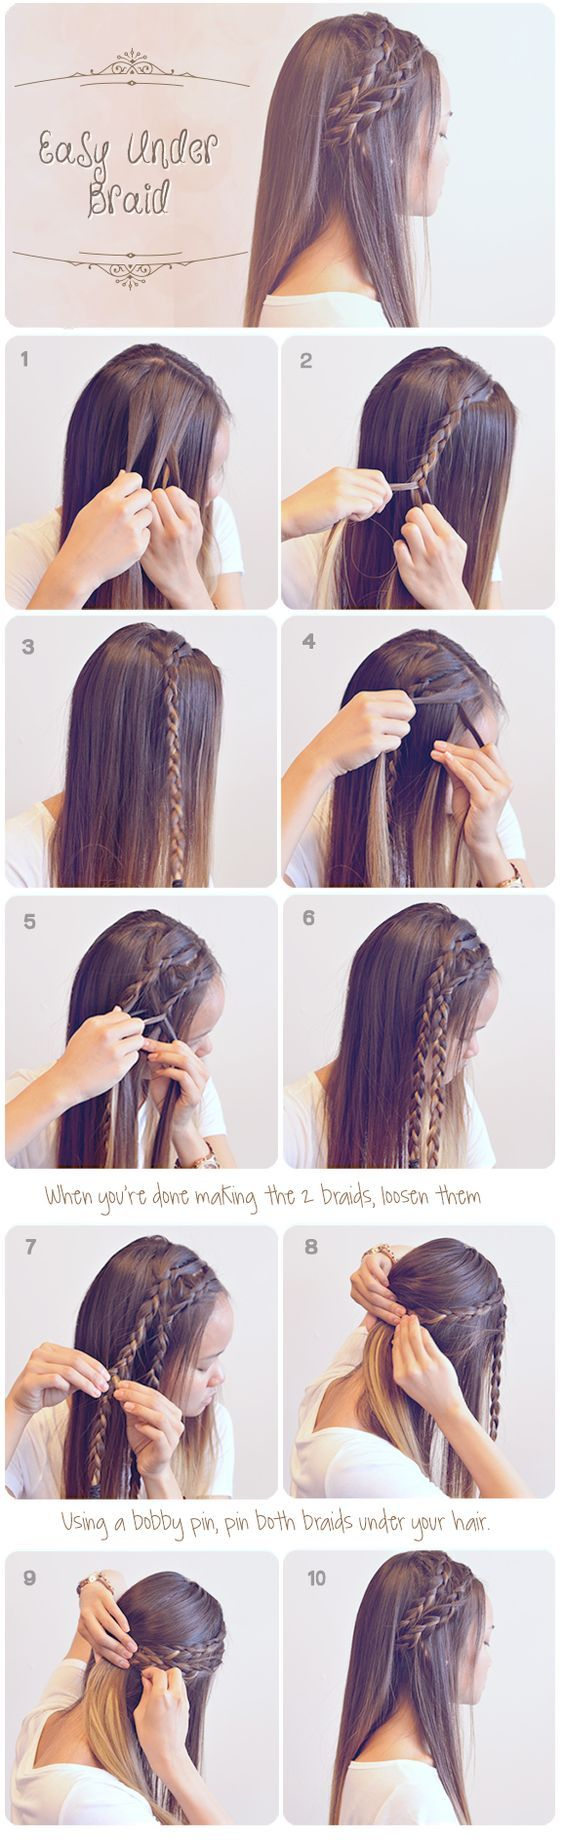 """Easy Under"" Braid"